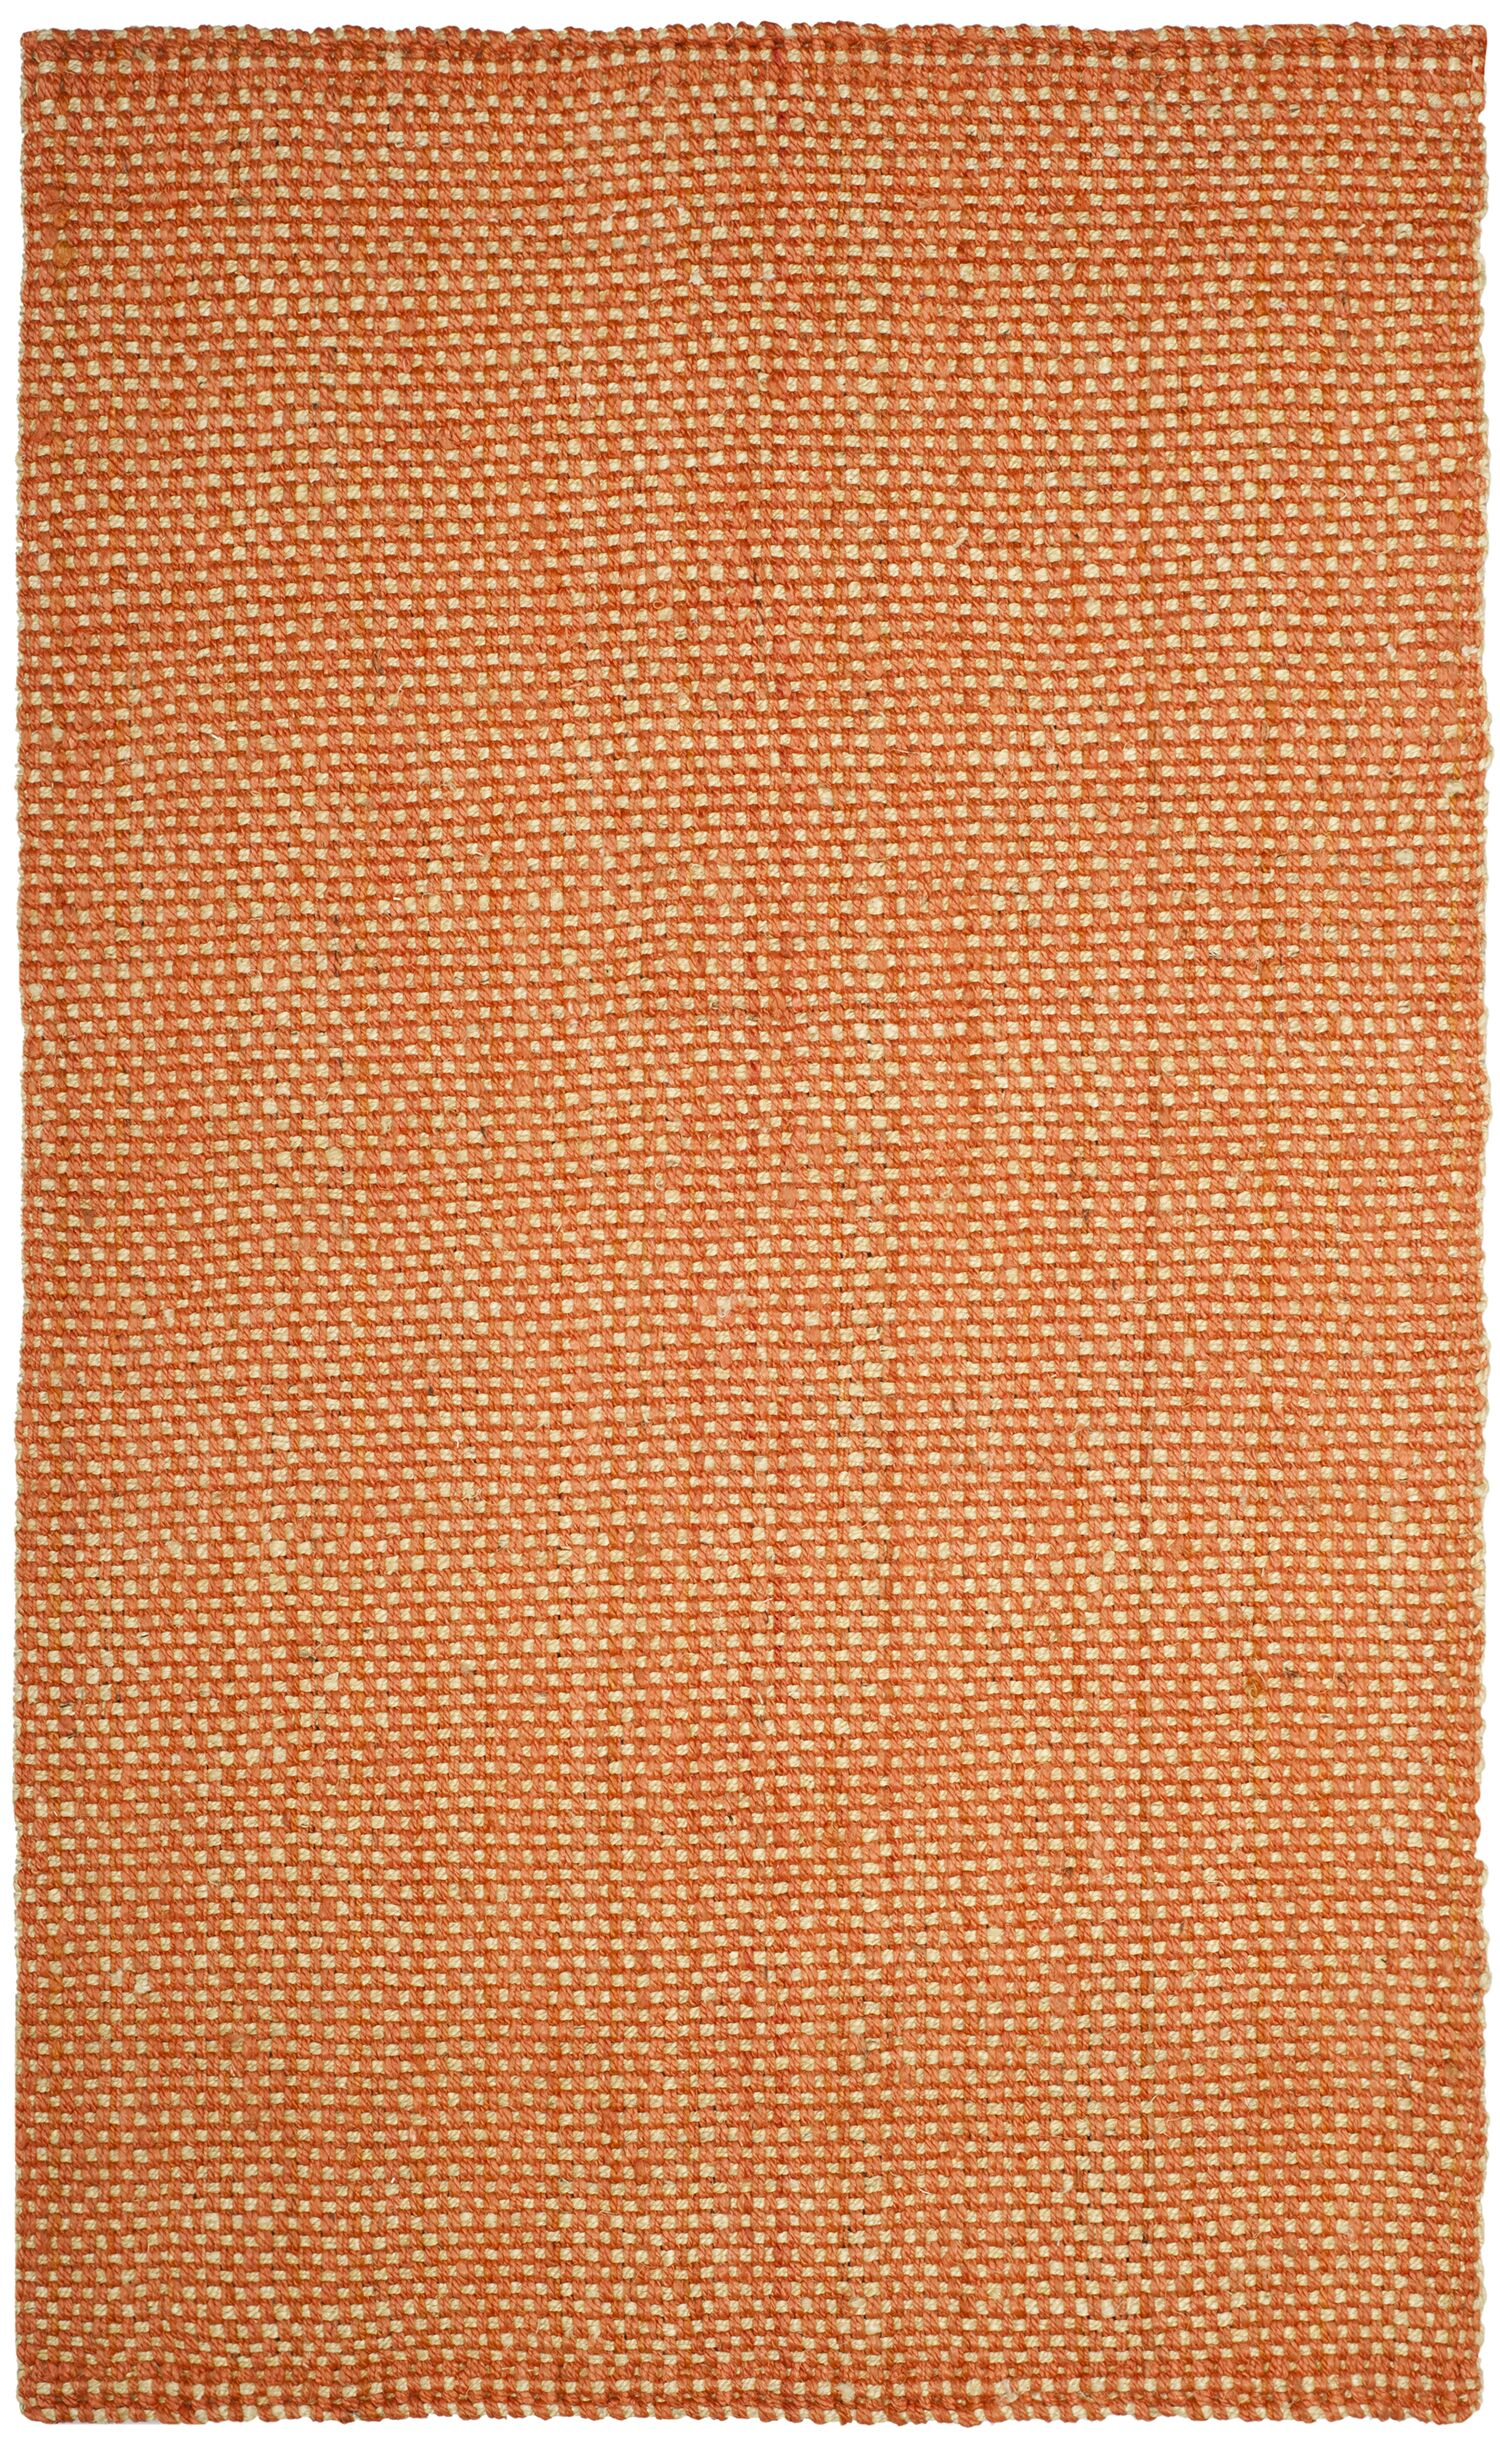 Stantonsburg Hand-Woven Rust/Natural Area Rug Rug Size: Rectangle 5' x 8'